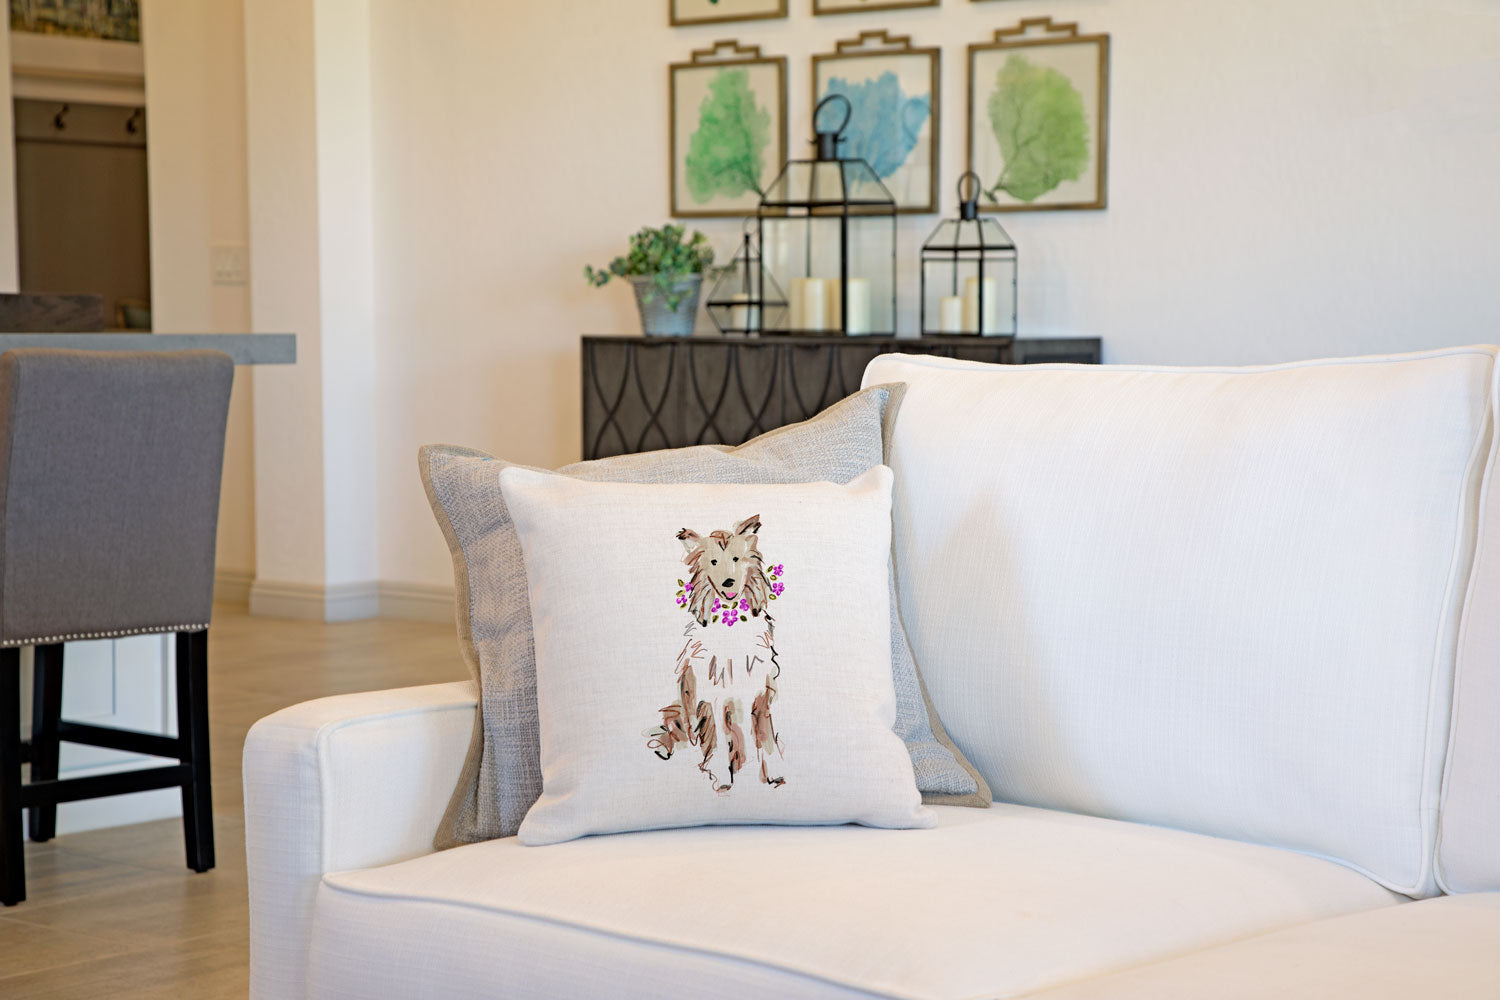 Coco Collie Throw Pillow Cover - Dog Illustration Throw Pillow Cover Collection-Di Lewis